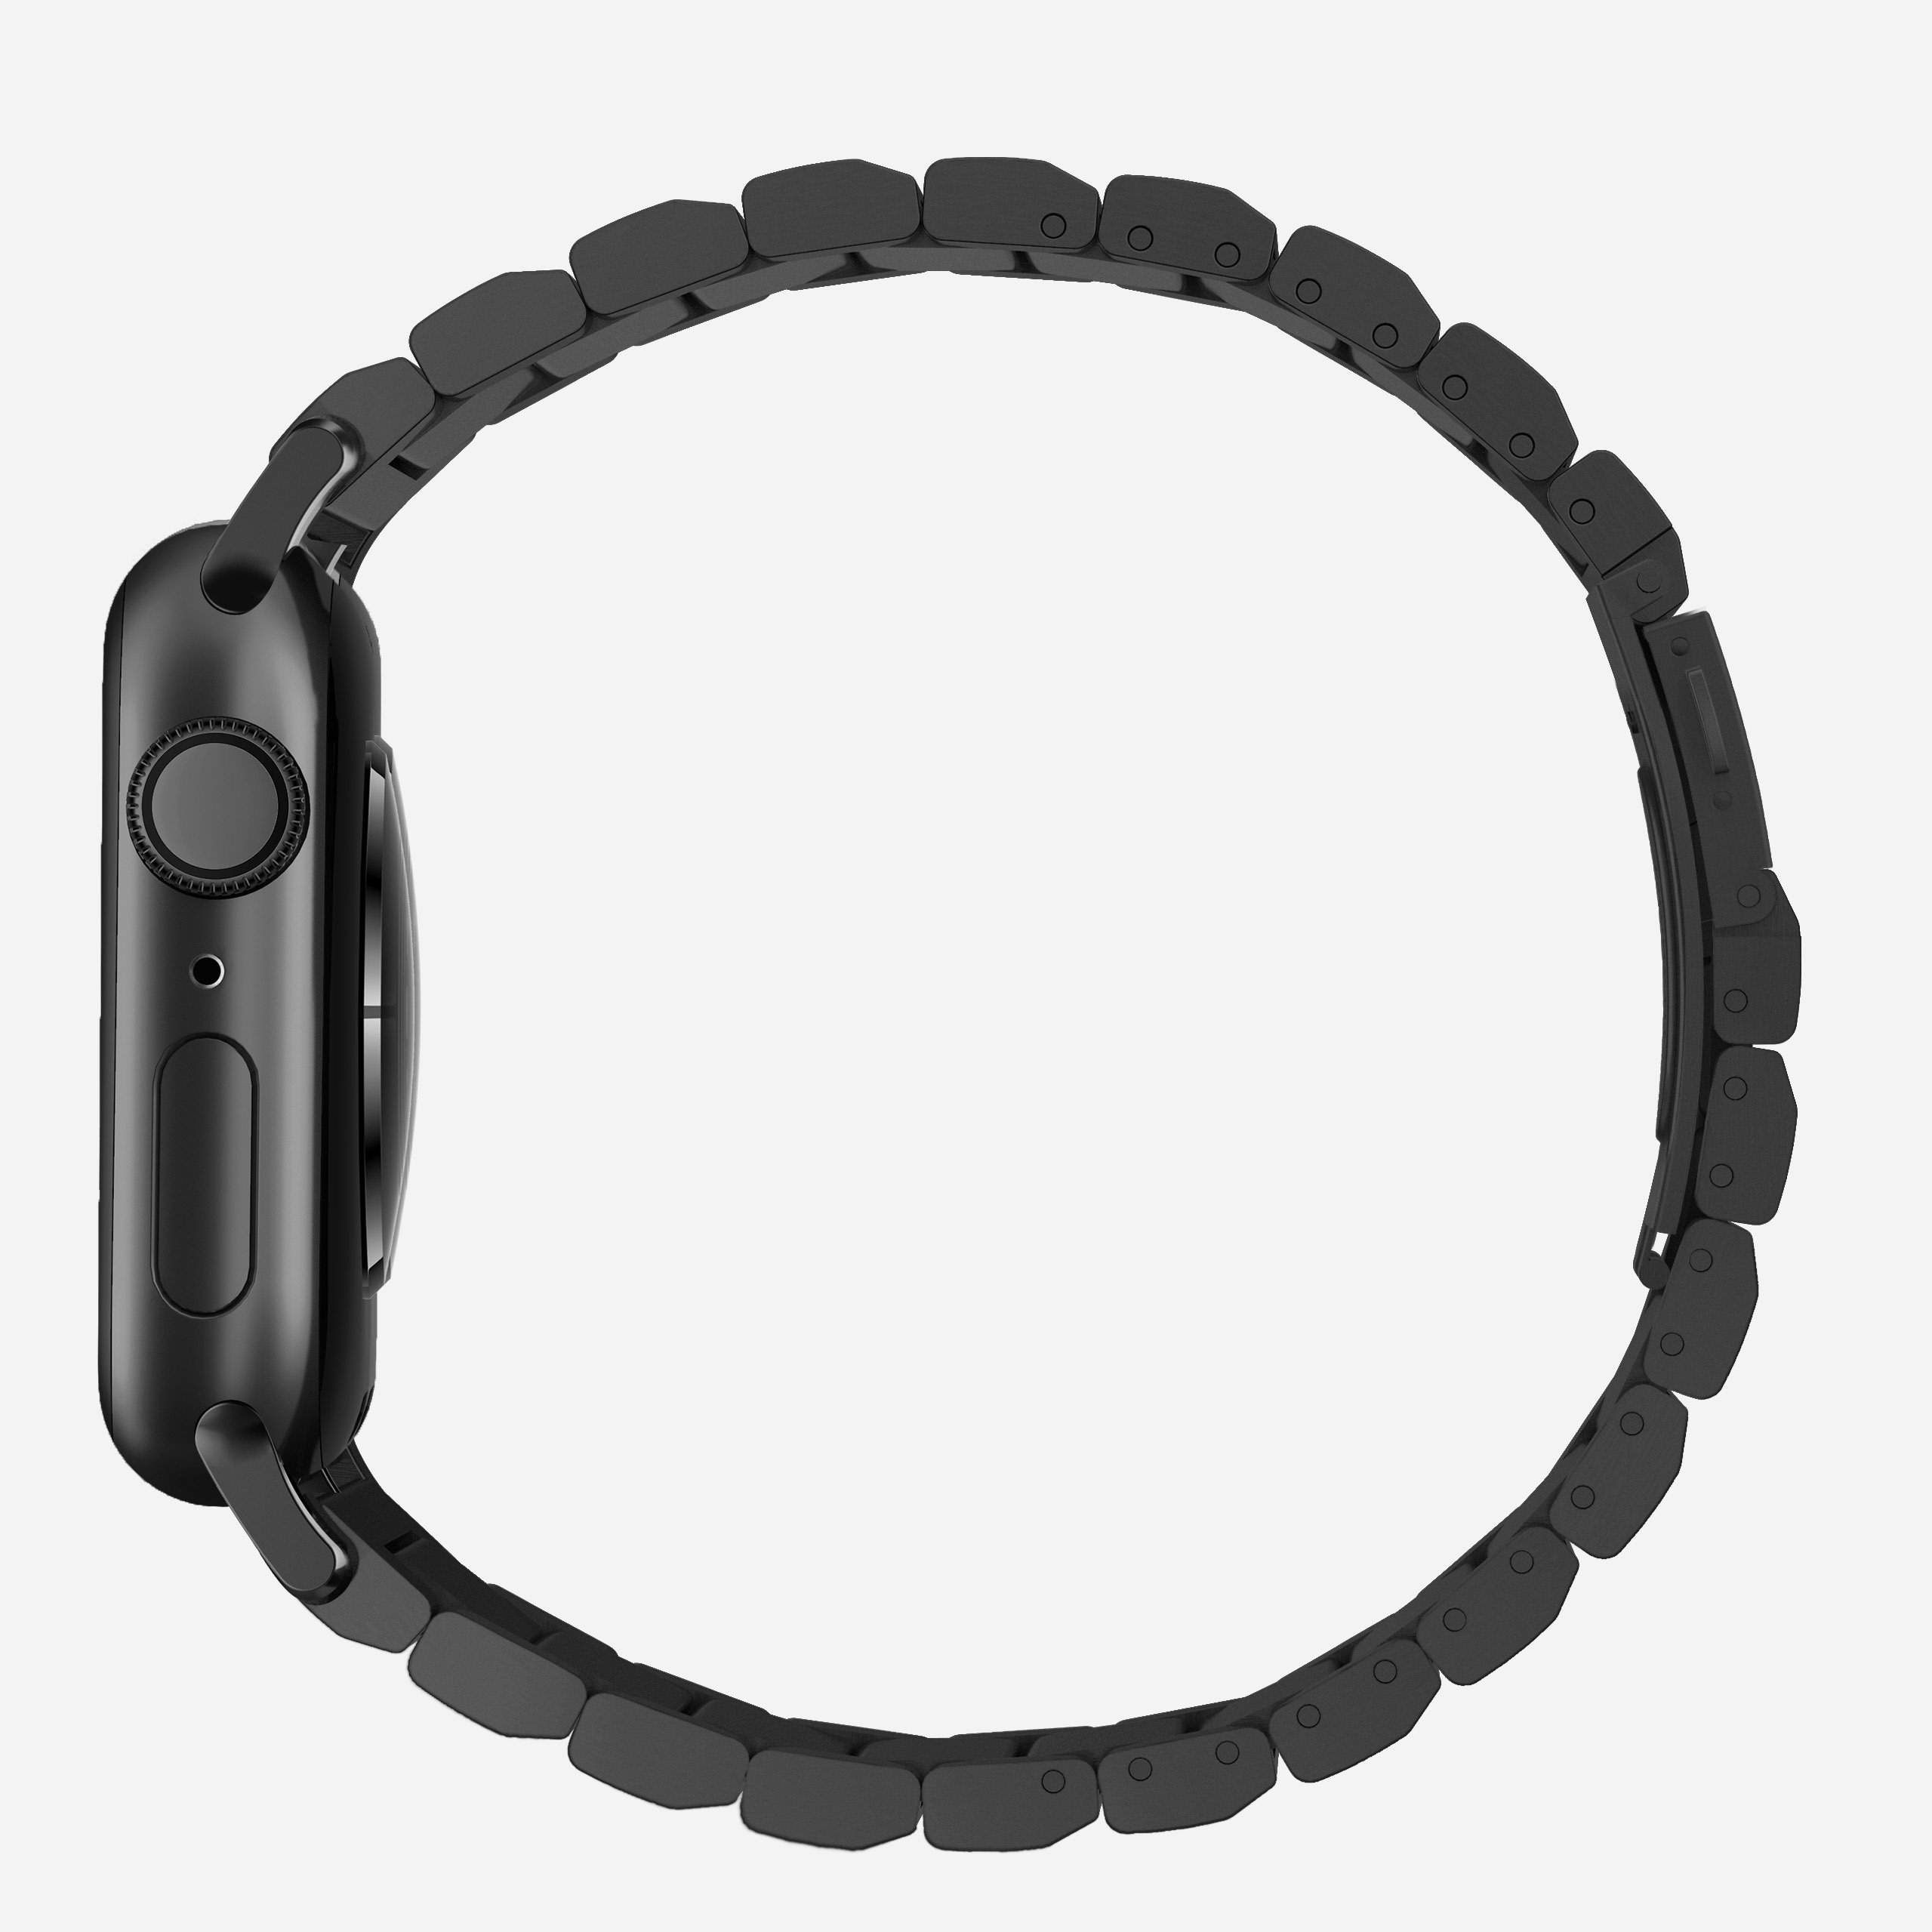 Titanium band black hardware